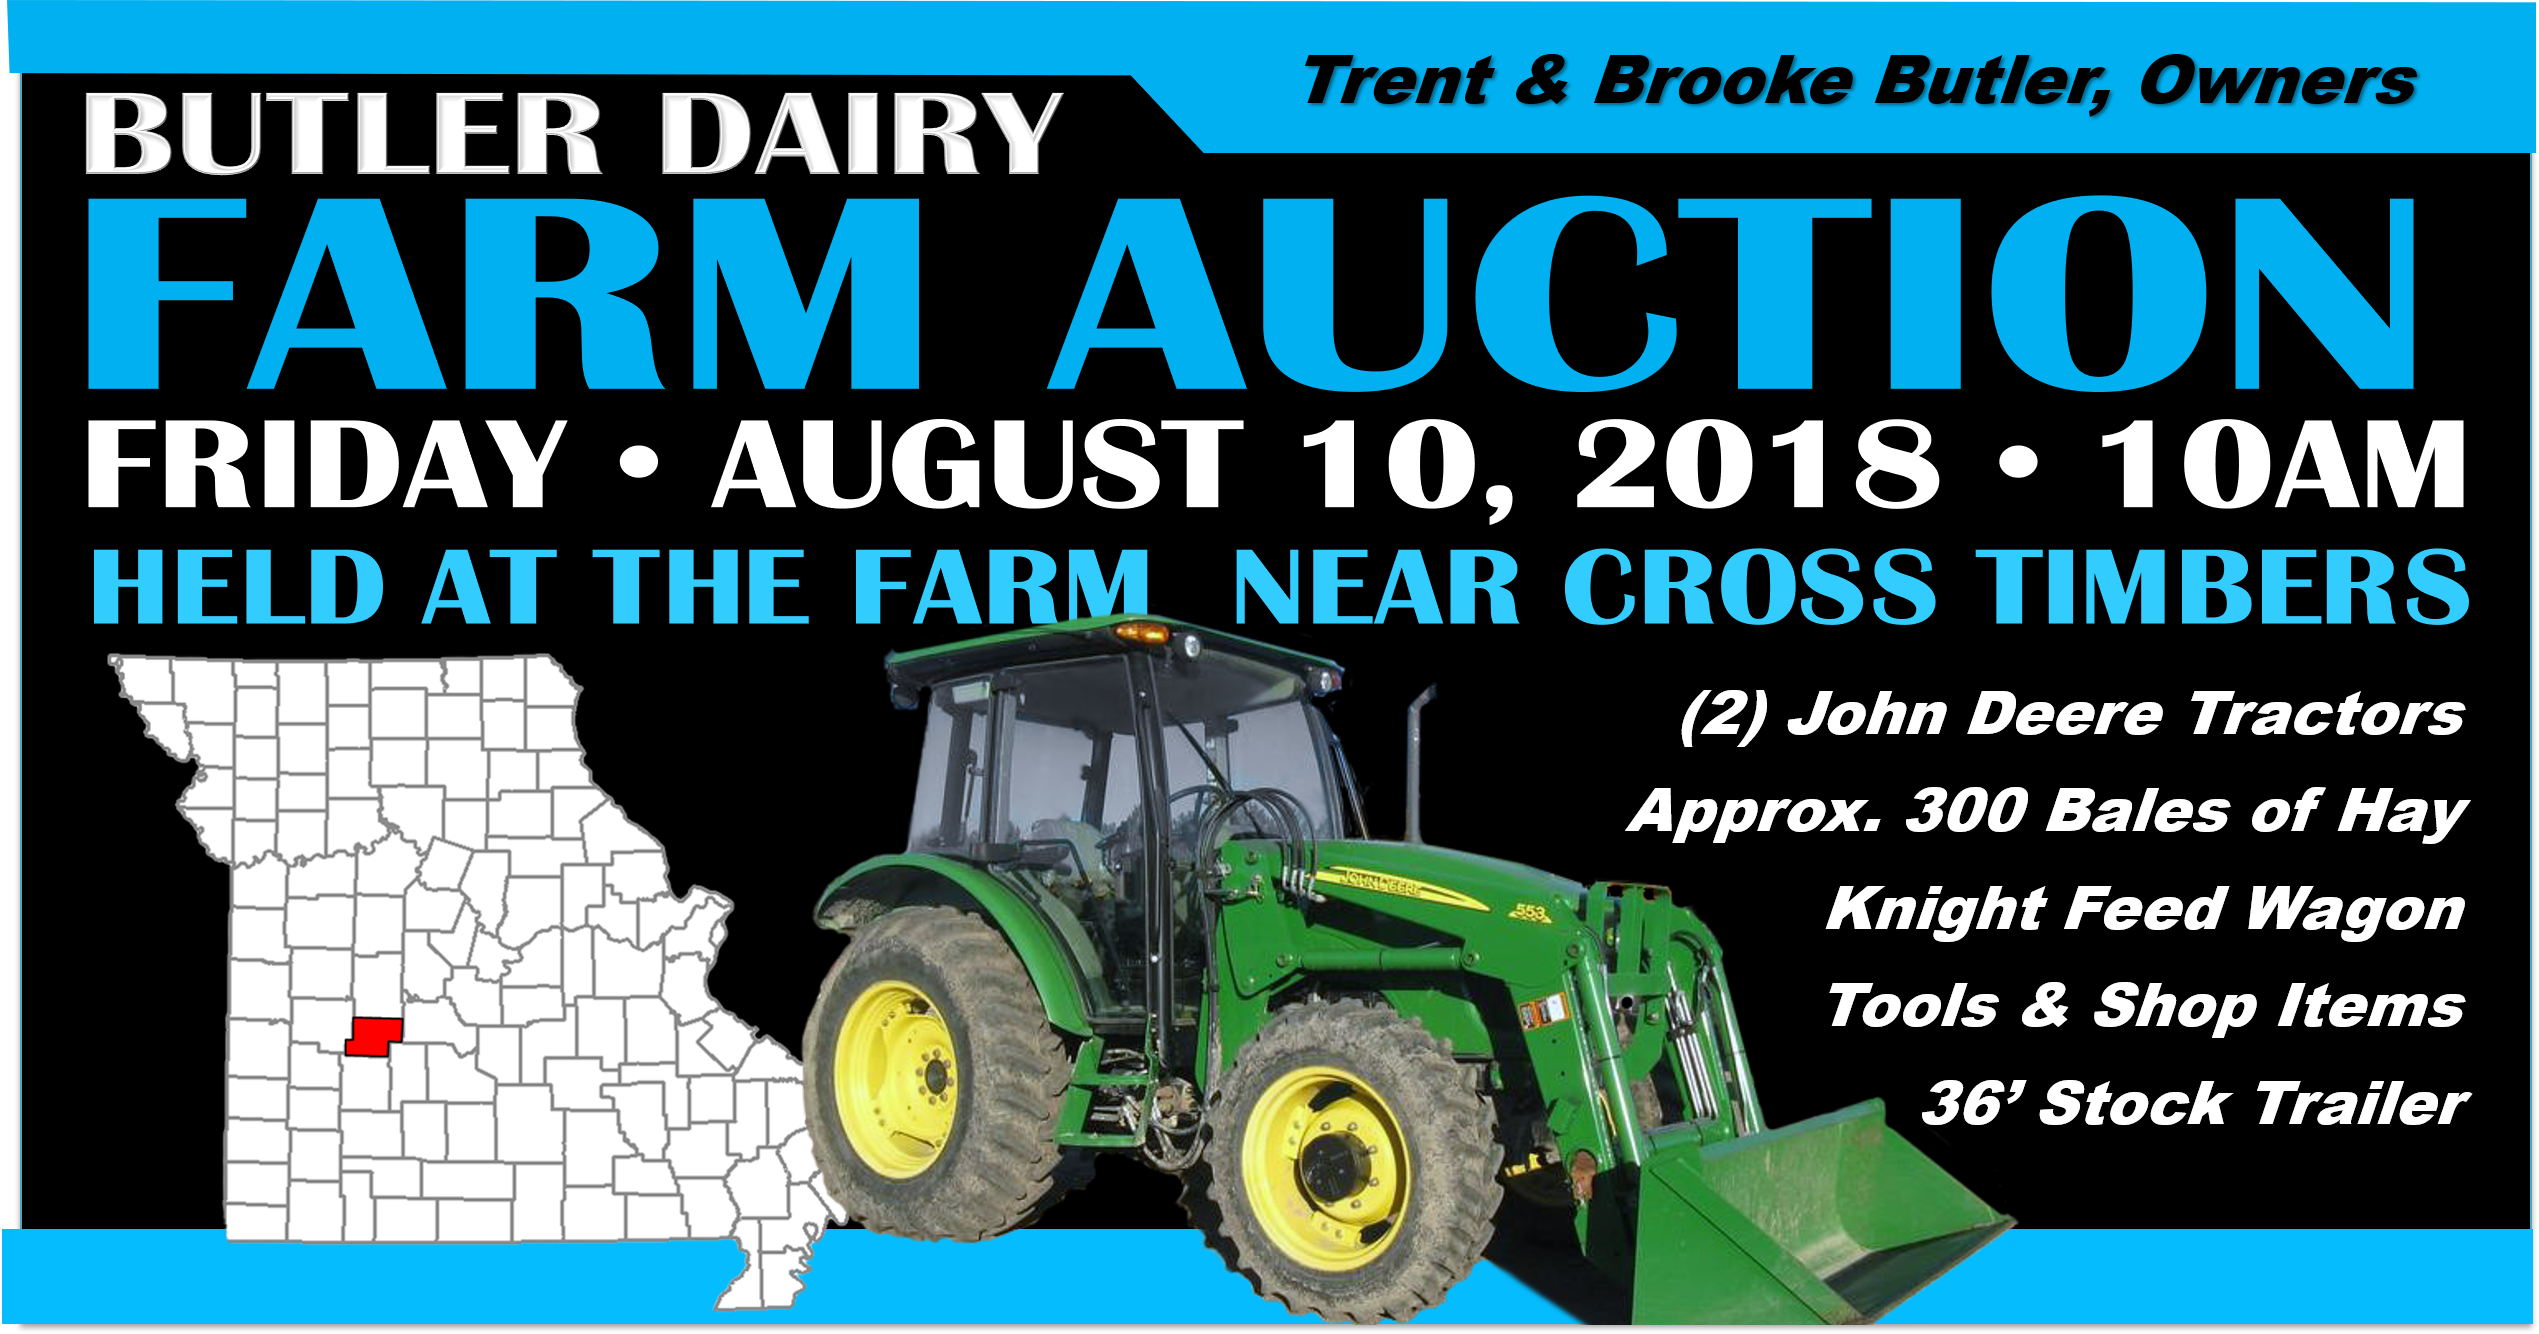 PLEASANT VALLEY RANCH (Butler Dairy) FARM AUCTION